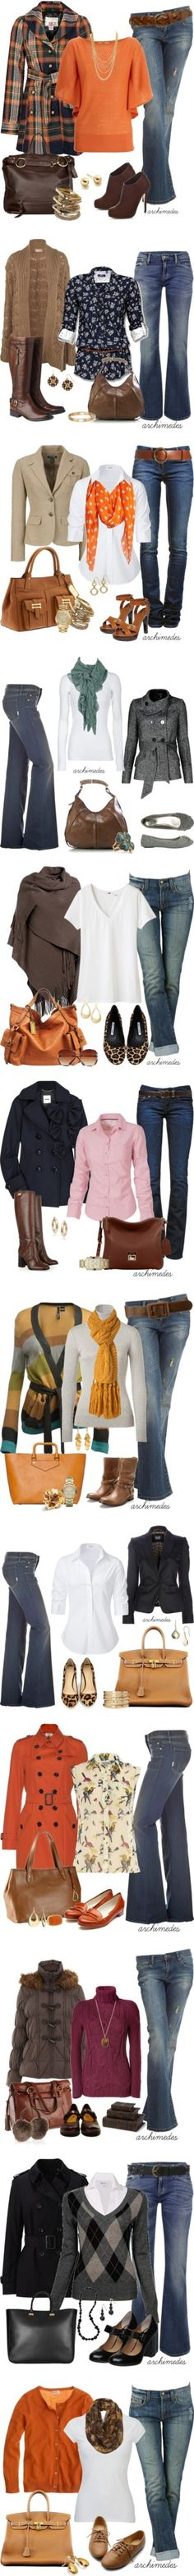 Great ideas for Fall outfits